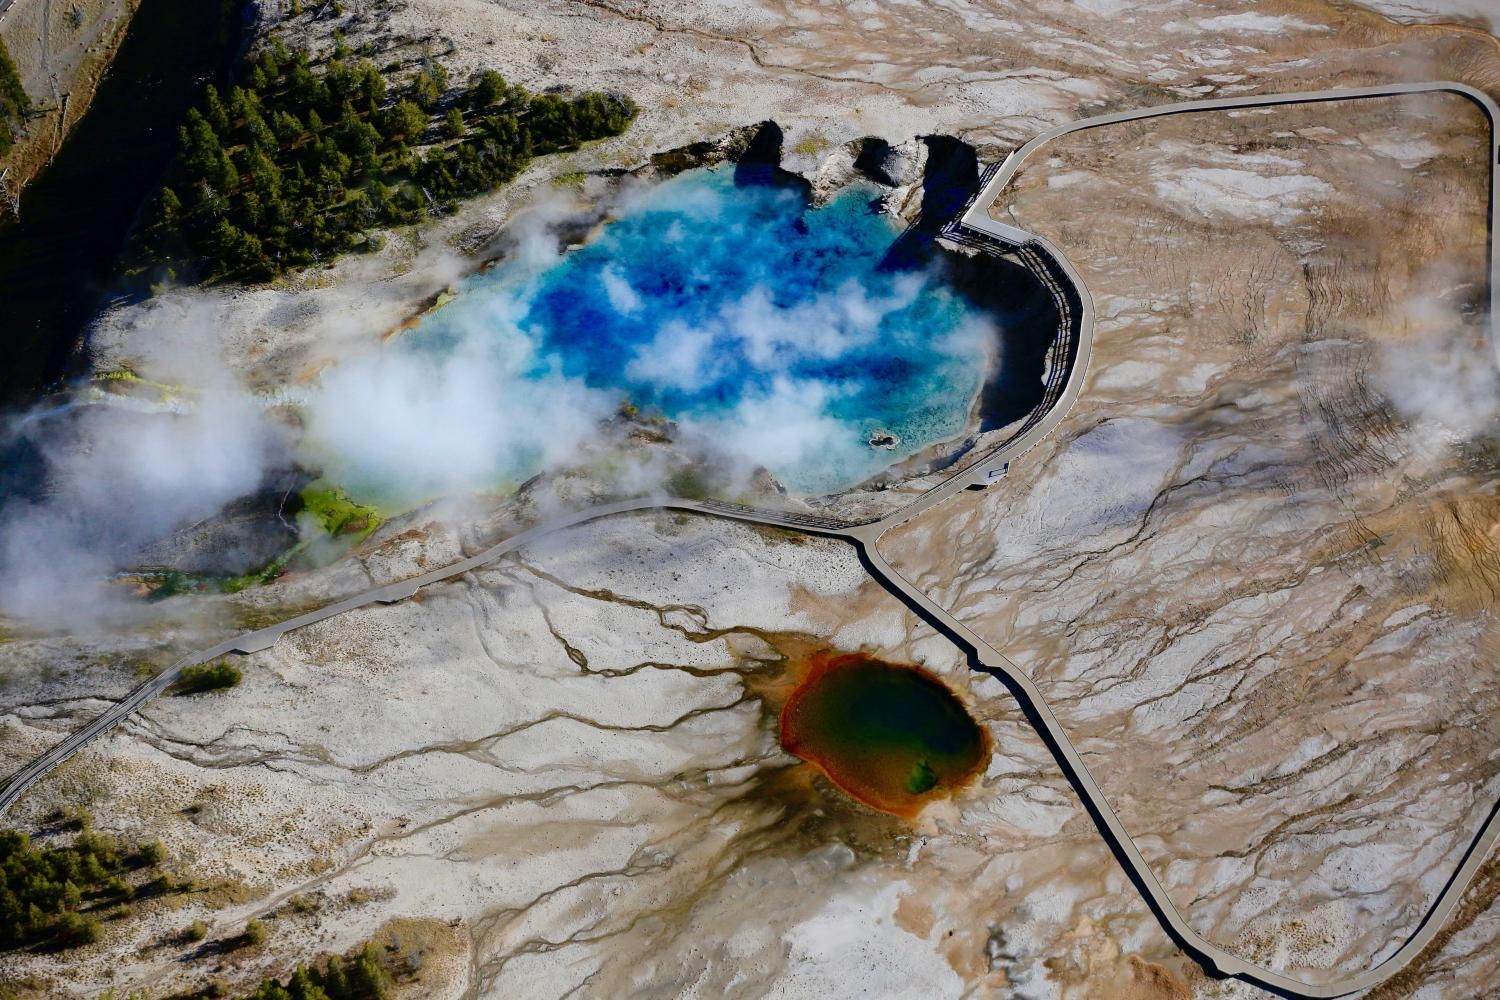 "AERIAL -ZOOM LENS-""EXCELSIOR GEYSER POOL"" AND VENT-""YELLOWSTONE NATIONAL PARK"" HAS MANY SECRETS YET TO BE DISCOVERED AND UNDERSTOOD"